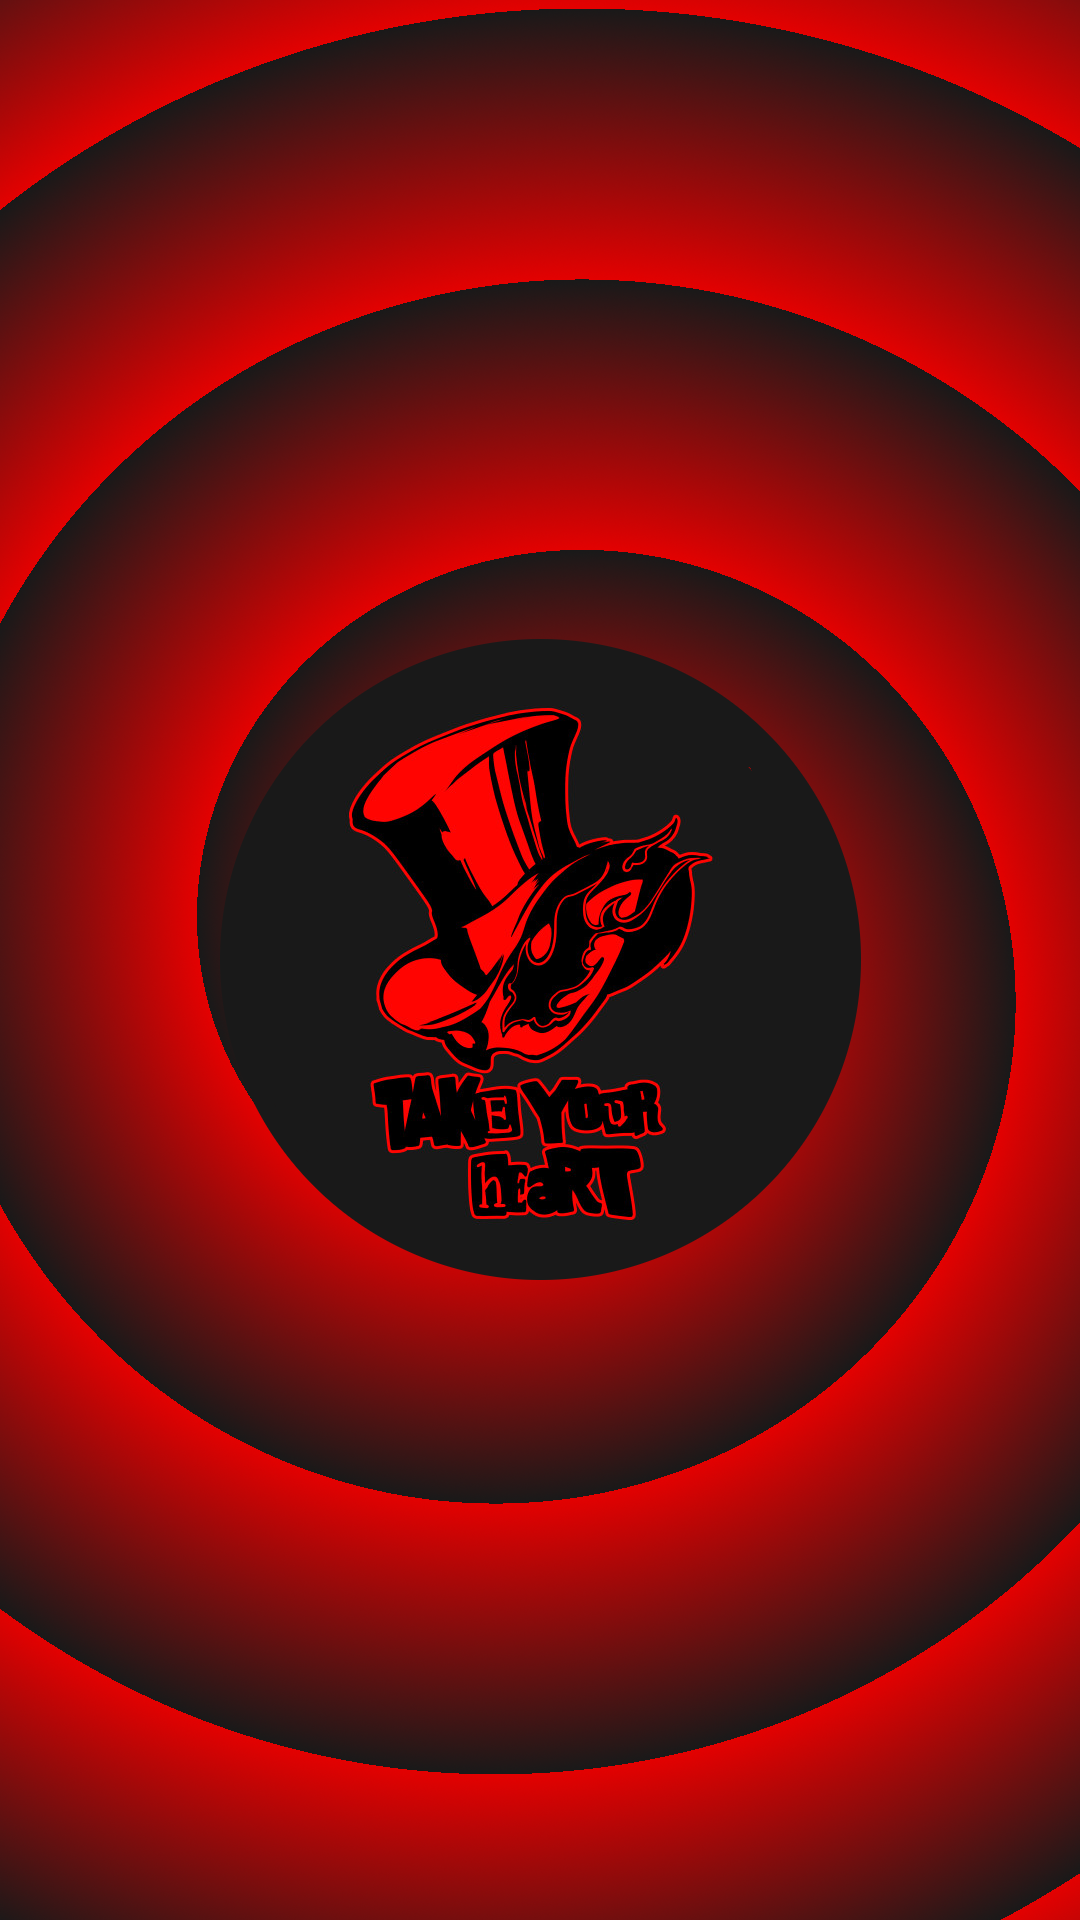 Persona 5 - Take Your Heart Phone Wallpaper by ...